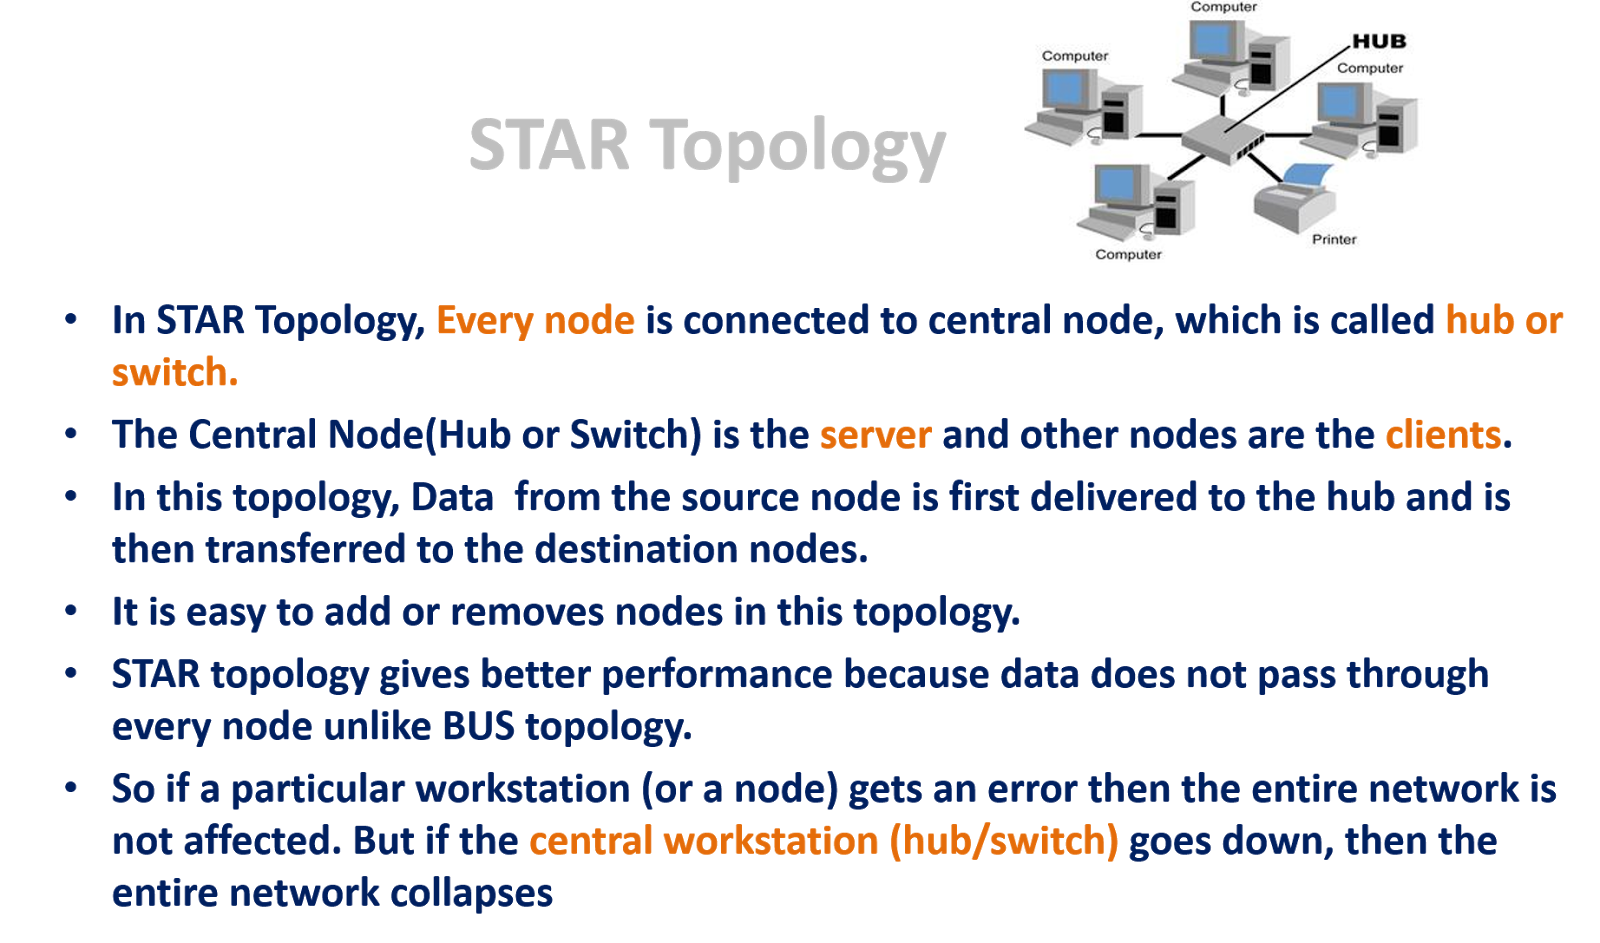 advantages and disadvantages of star topology diagram wiring symbols automotive network topologies its